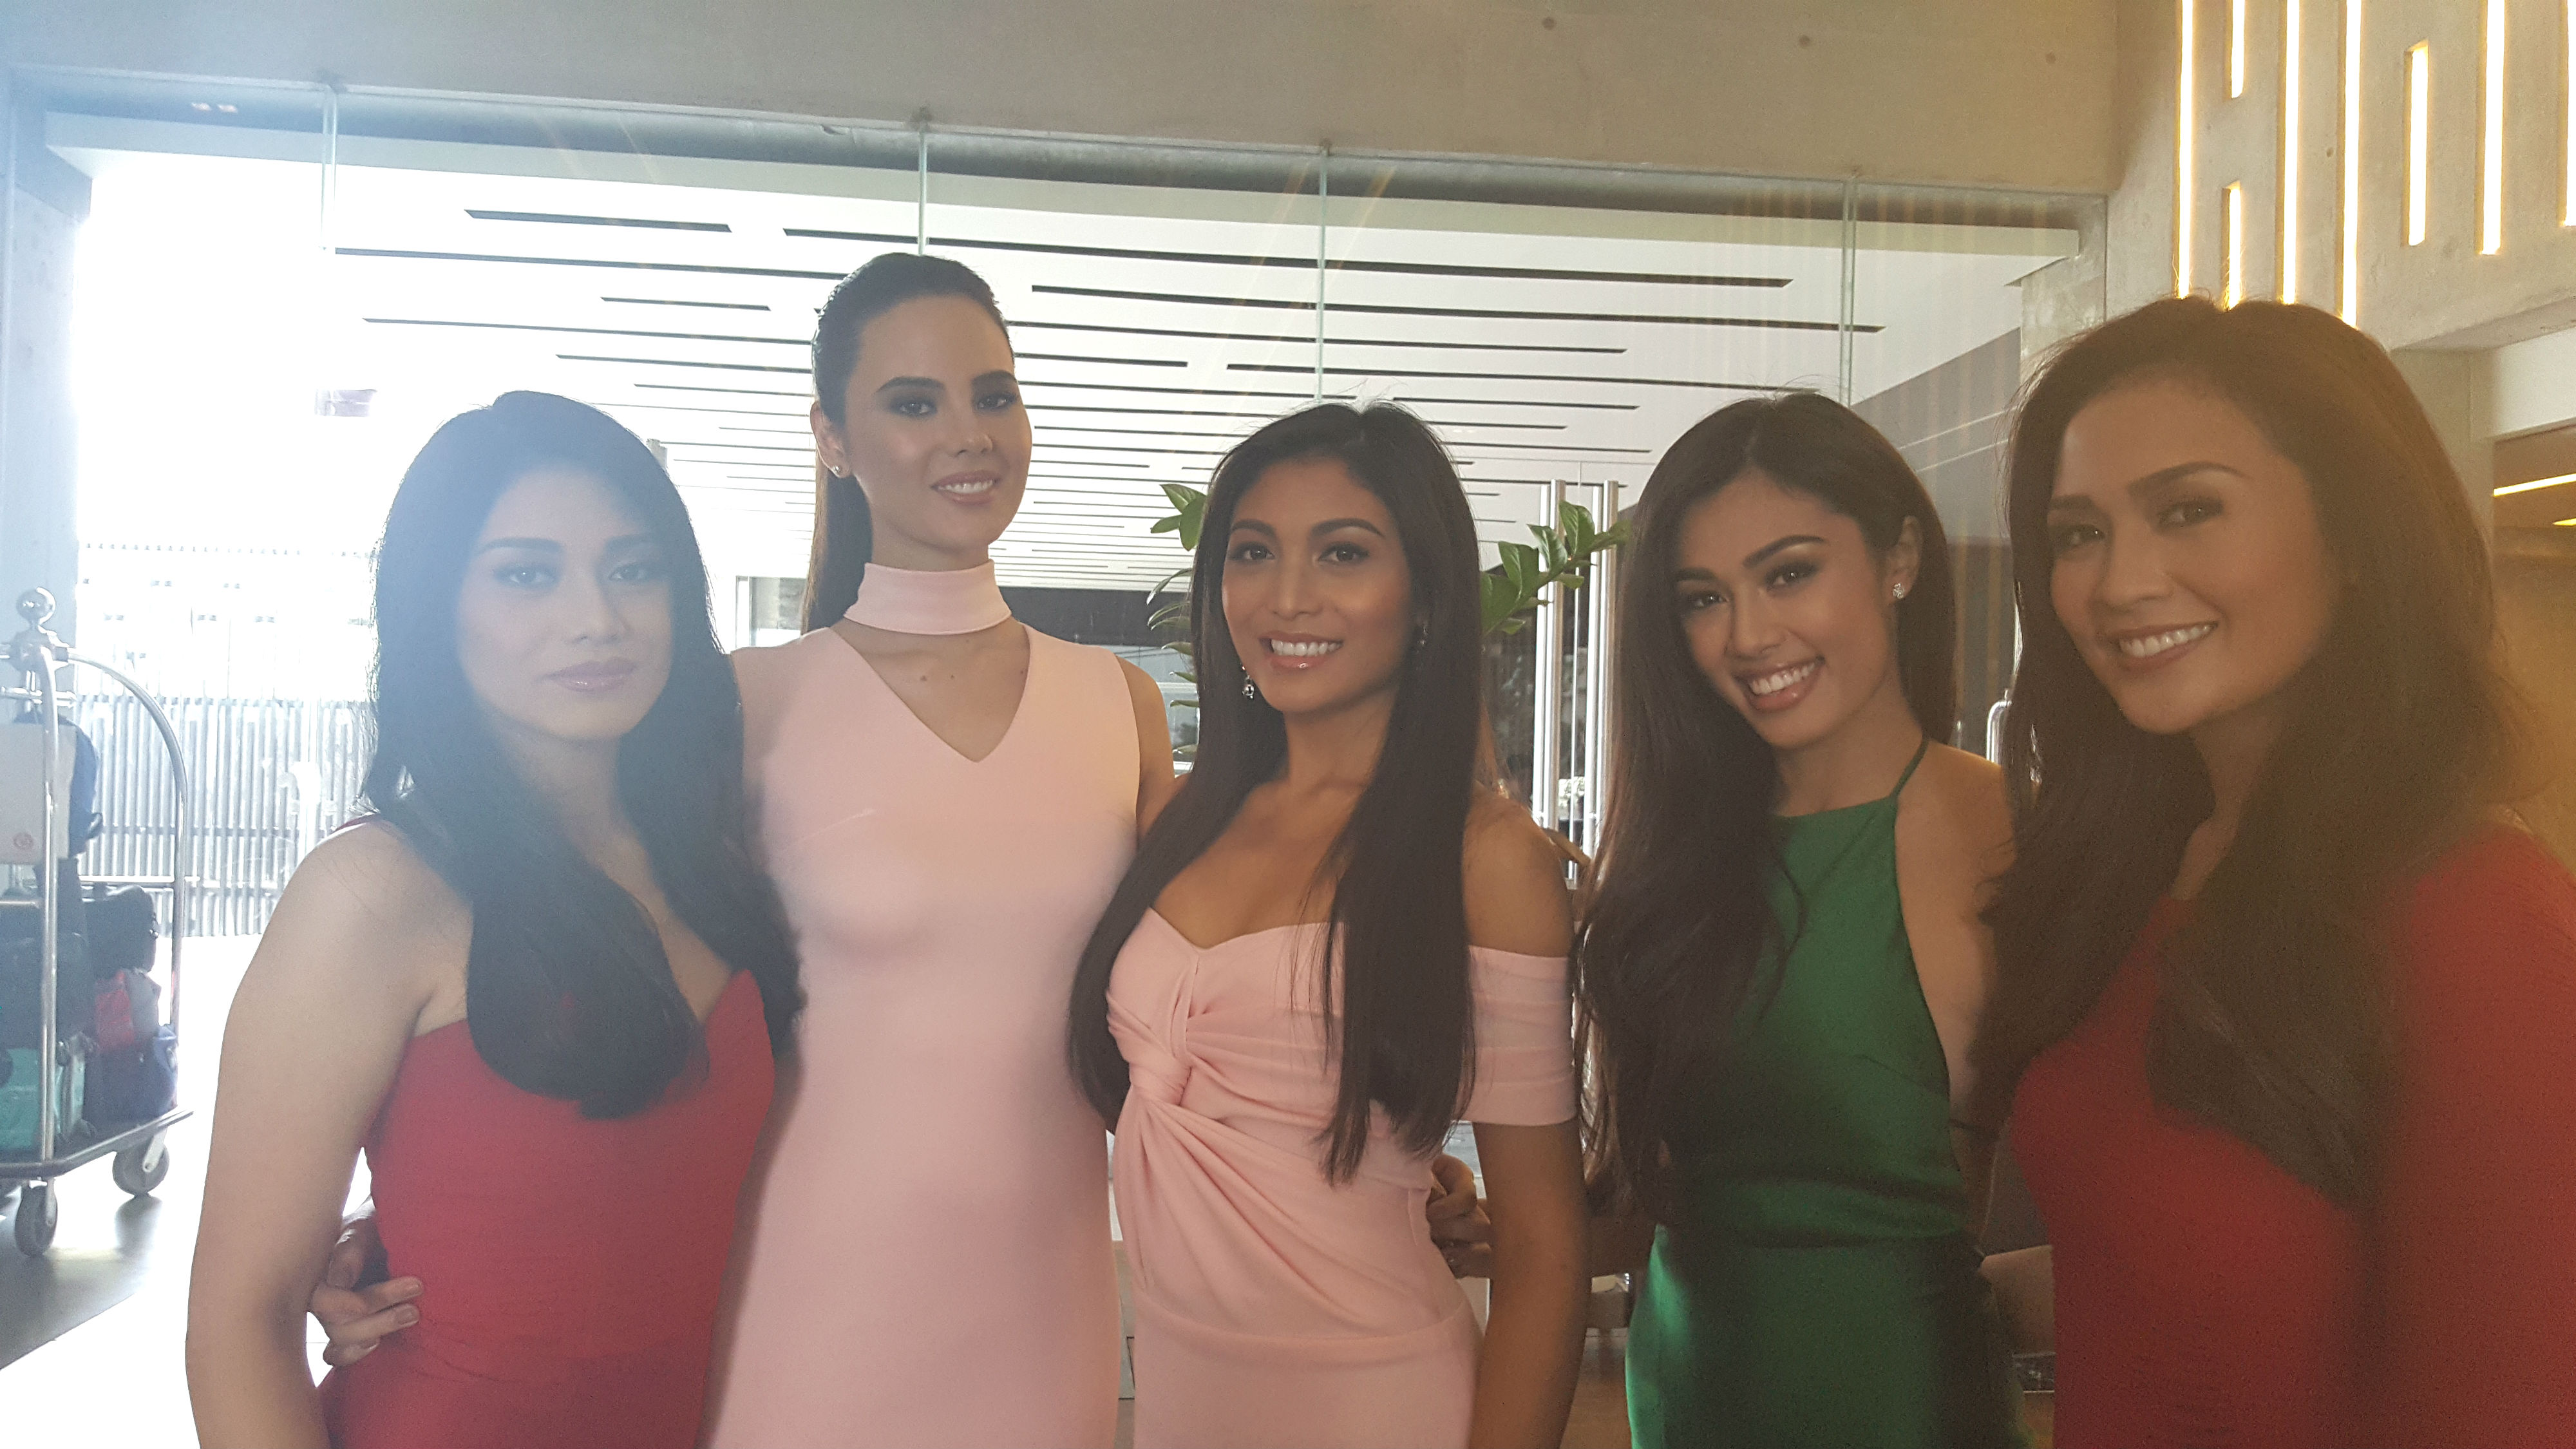 Catriona with her Aces and Queens sisters Vinie Dy Quiangco, Arienne Calingo, Ralph Lauren Asuncion, and Sandra Lemonon. Photo by Alexa Villano/Rappler